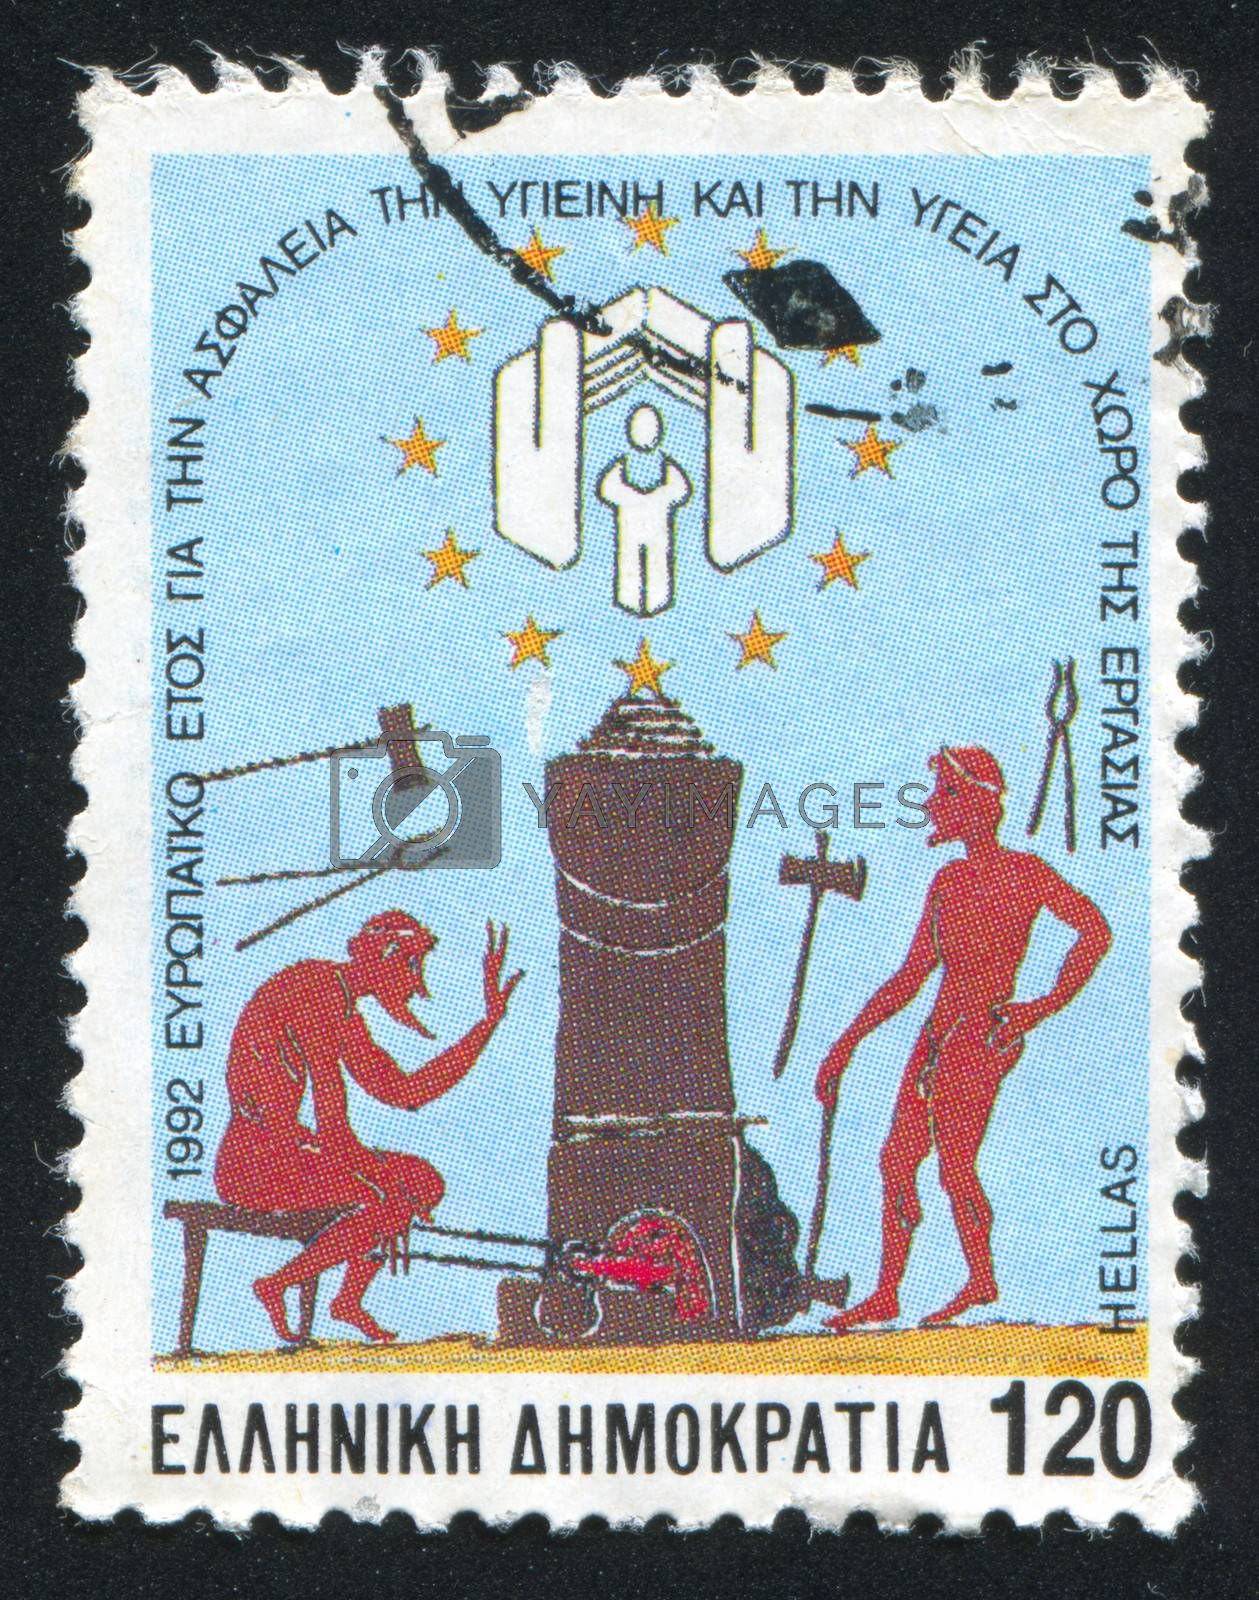 GREECE - CIRCA 1992: stamp printed by Greece, shows Gephaestus at his forge, circa 1992